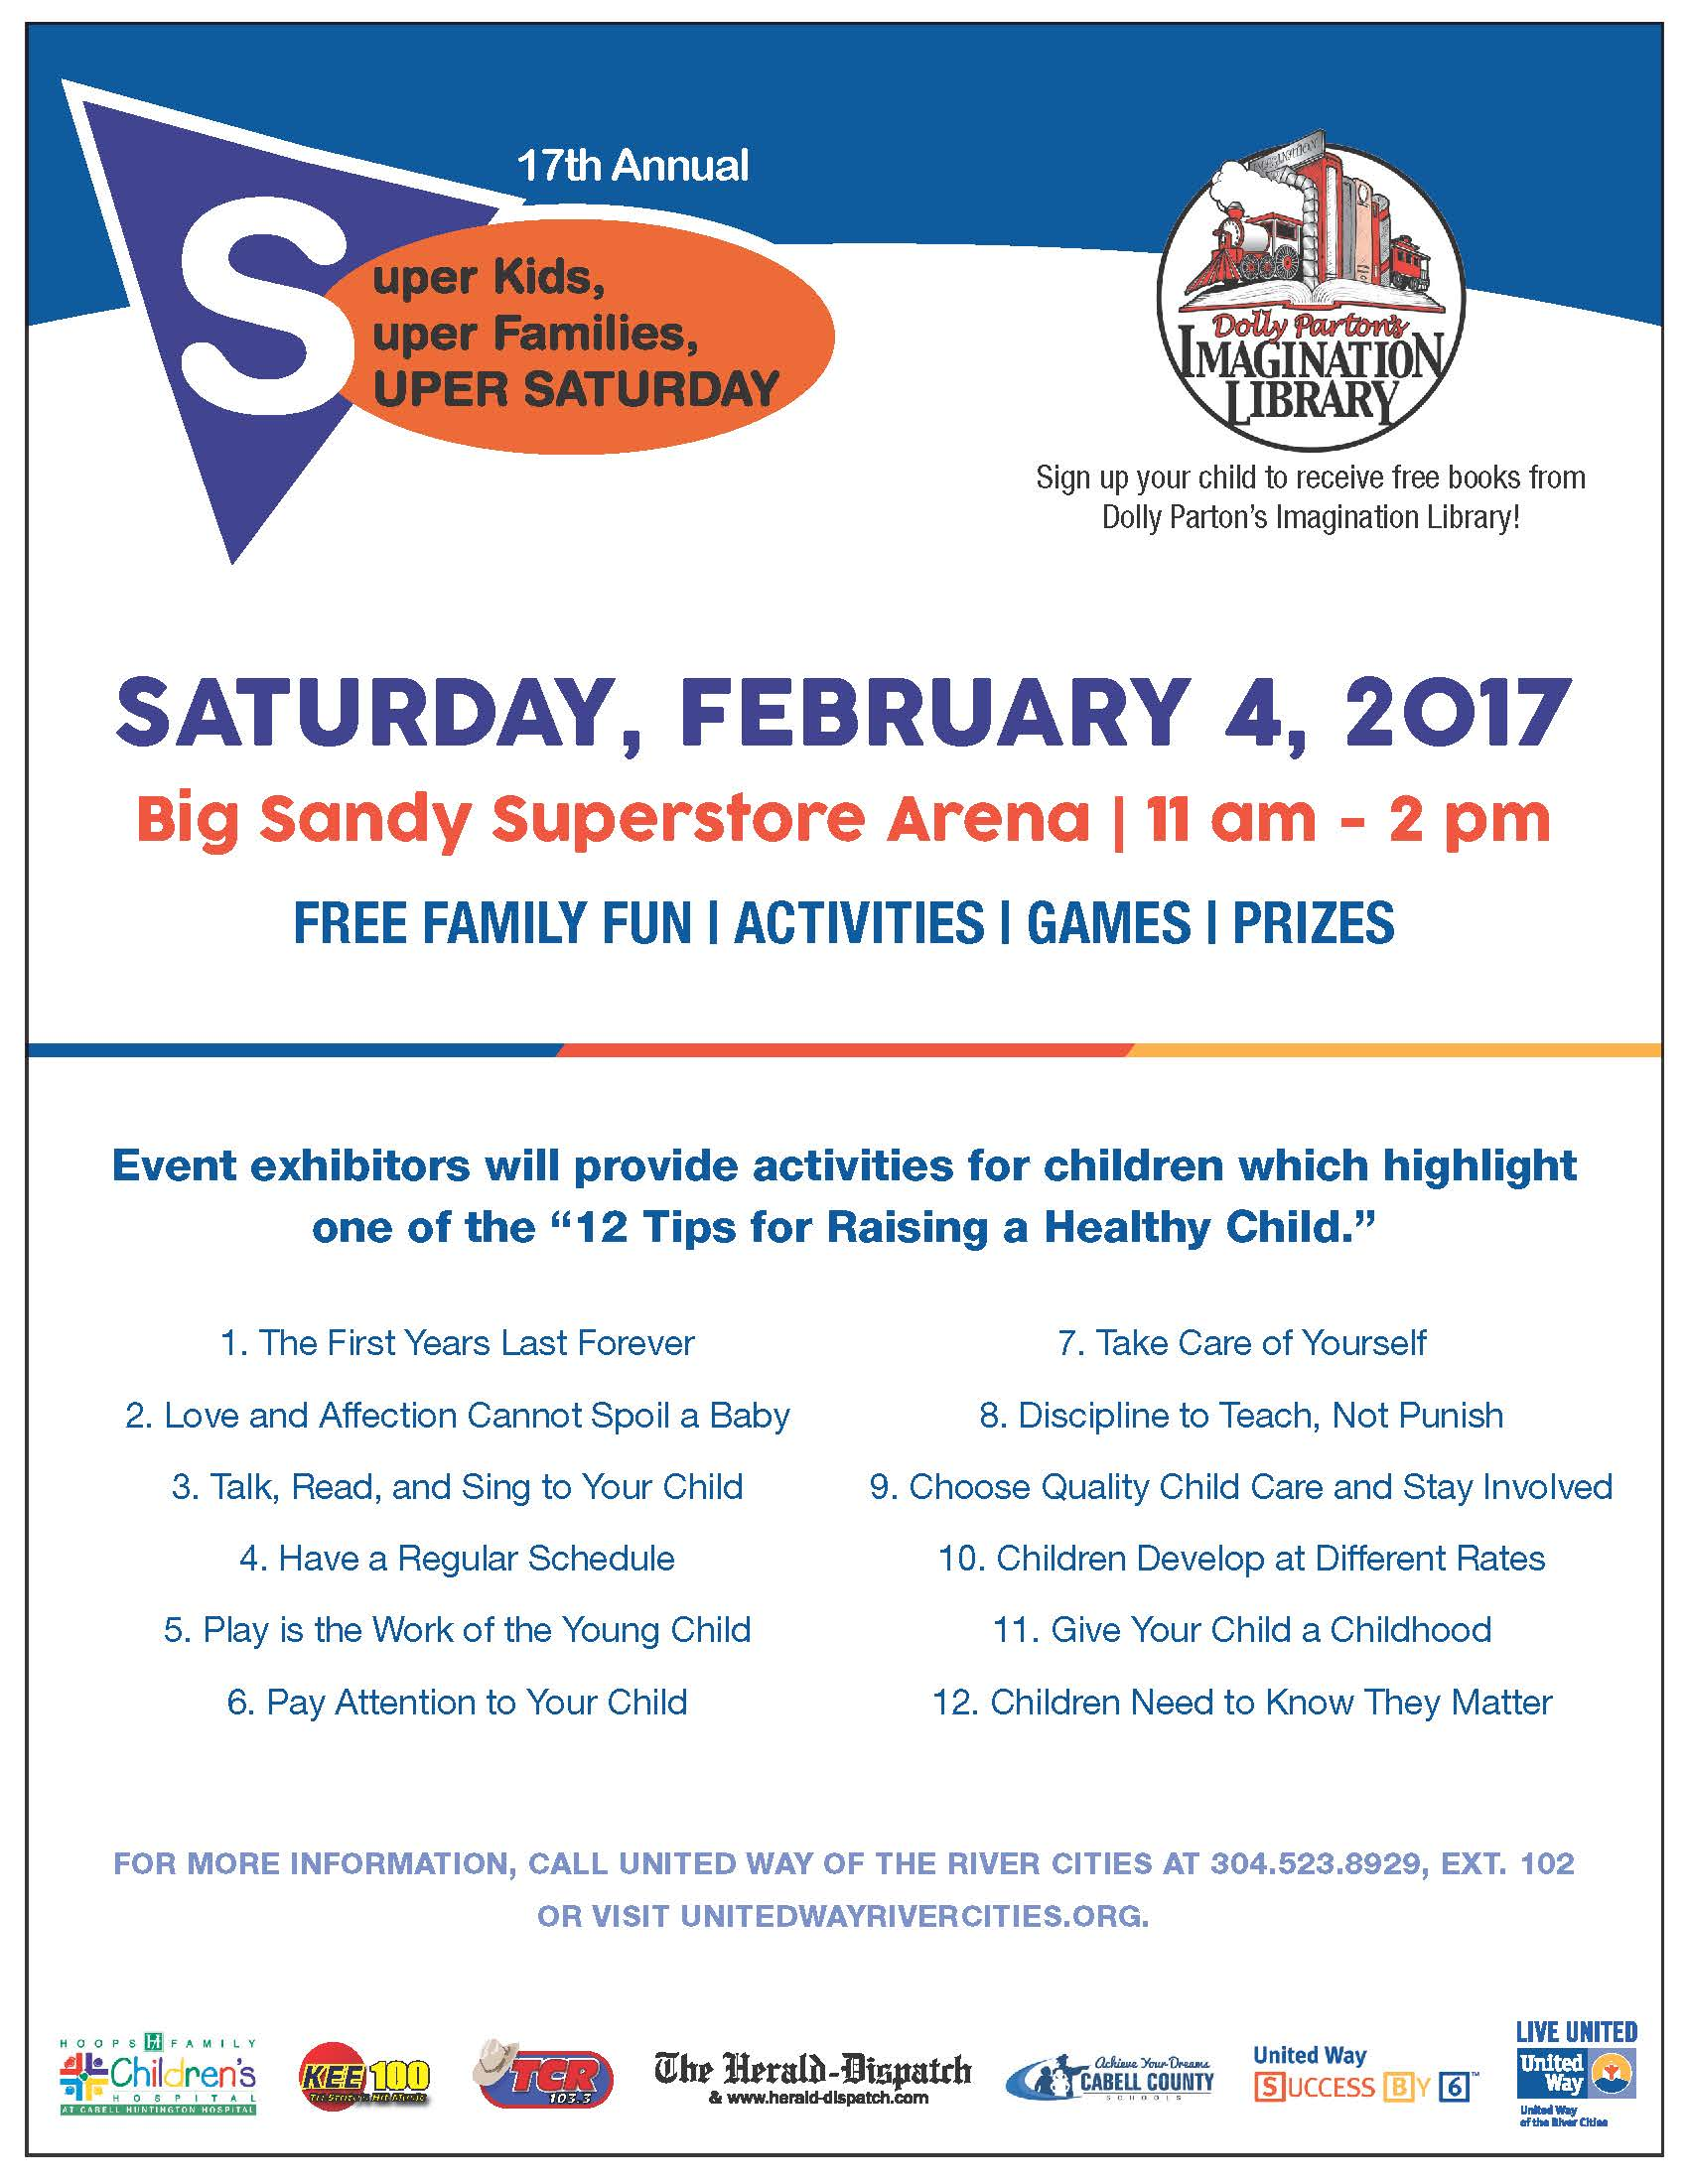 Super Kids, Super Families, Super Saturday Feb 4 – Cabell. Cabell County  seeks state funds for new elementary school